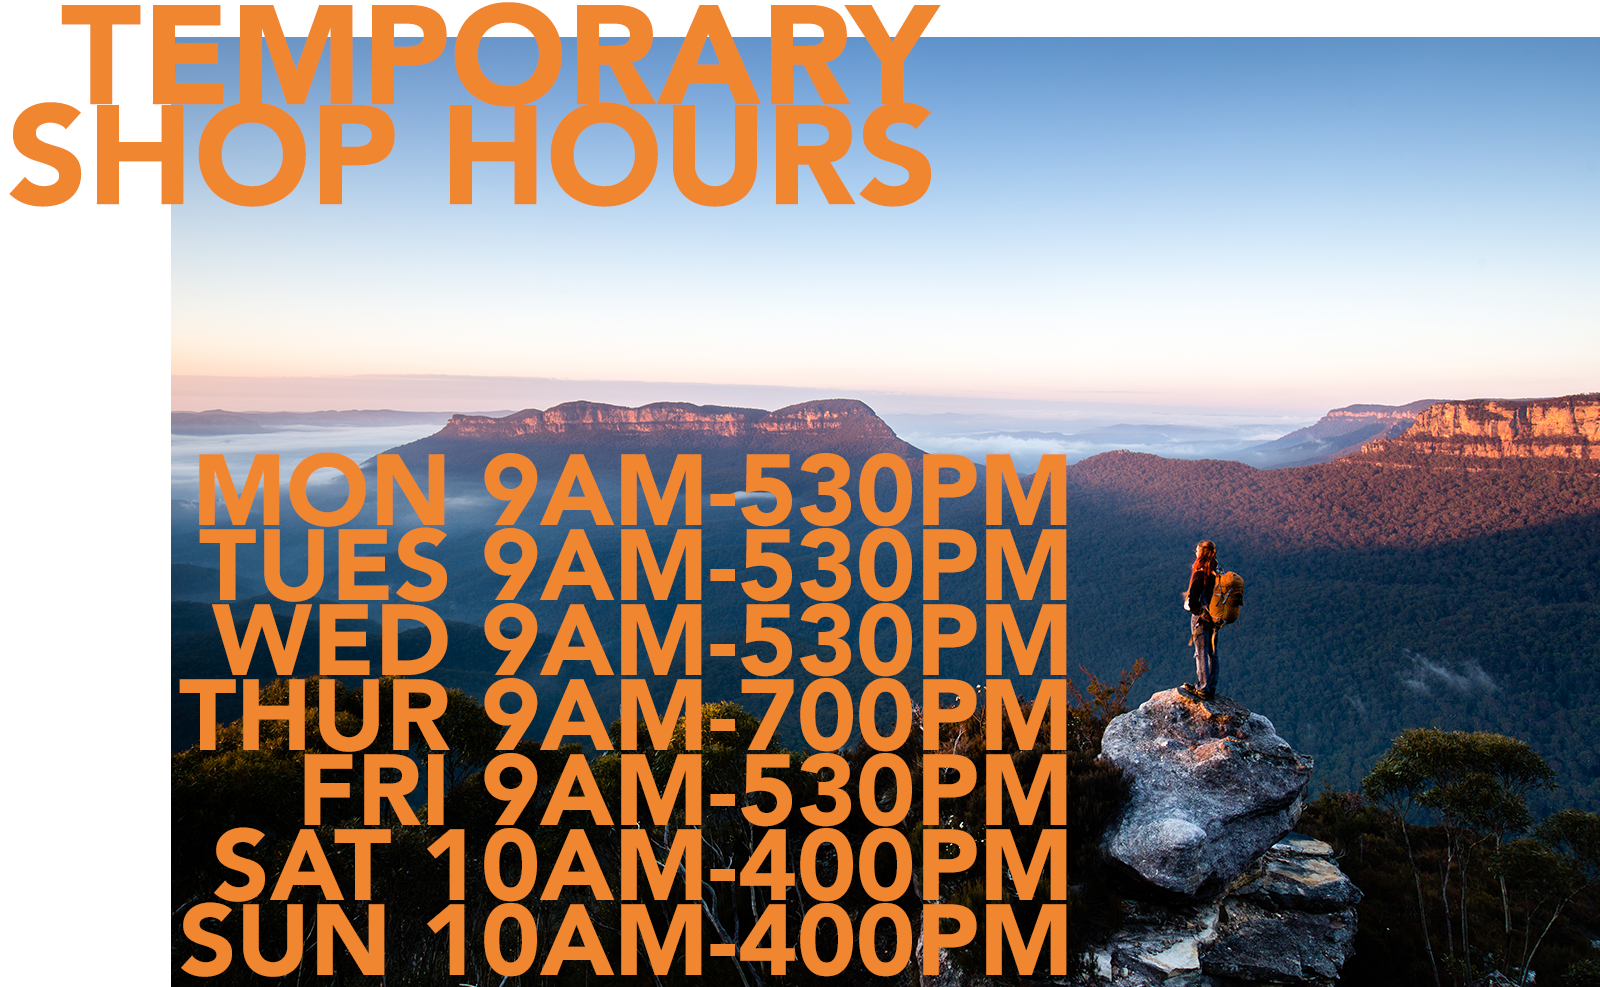 Mountain Equipment Sydney & Chatswood Temporary Store Hours